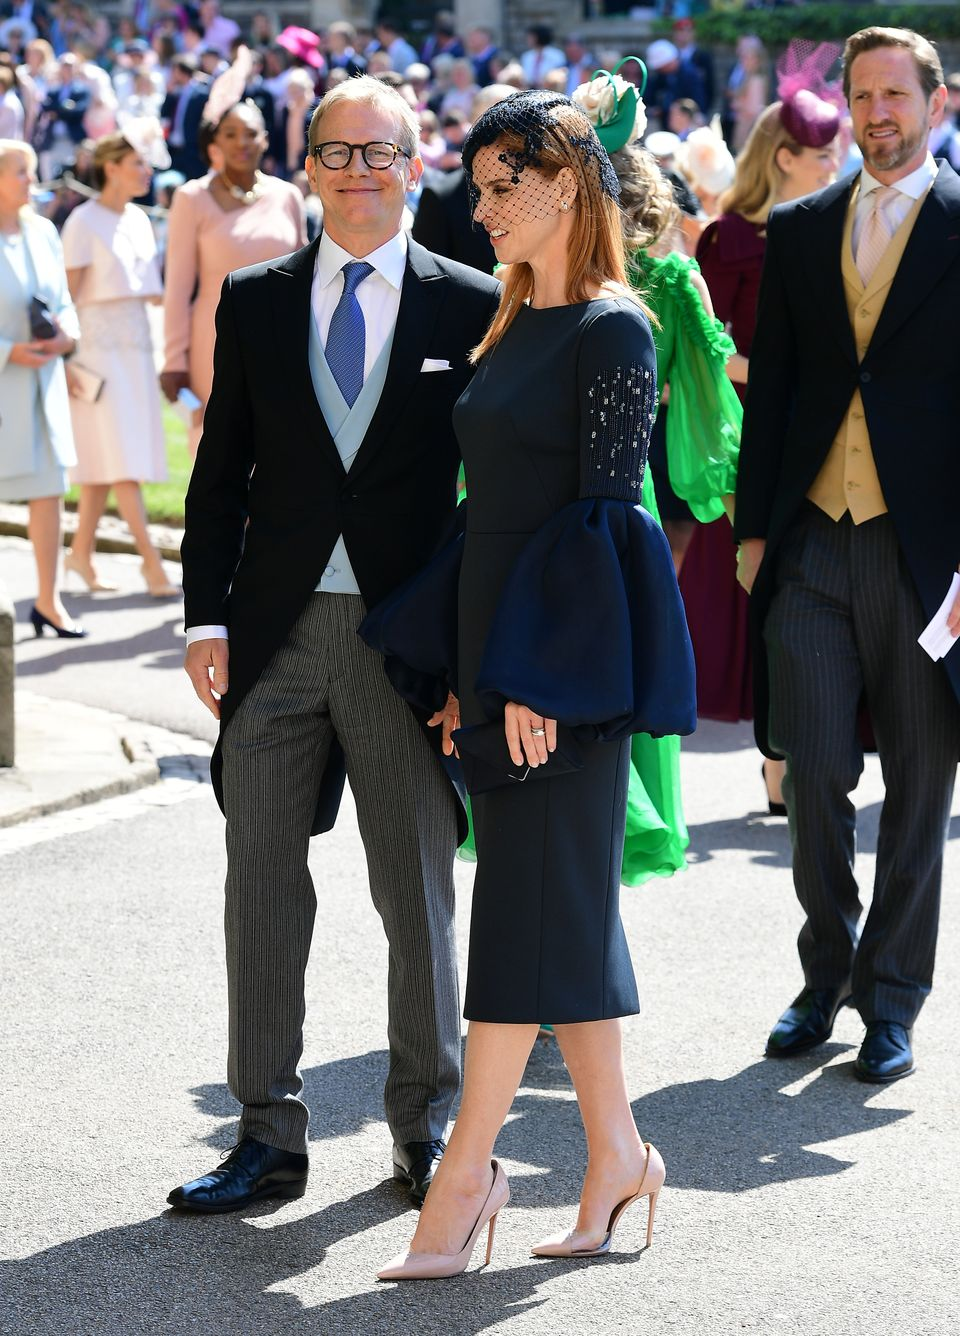 8a24af7fdba Amal Clooney Leads The Best-Dressed List At The Royal Wedding ...